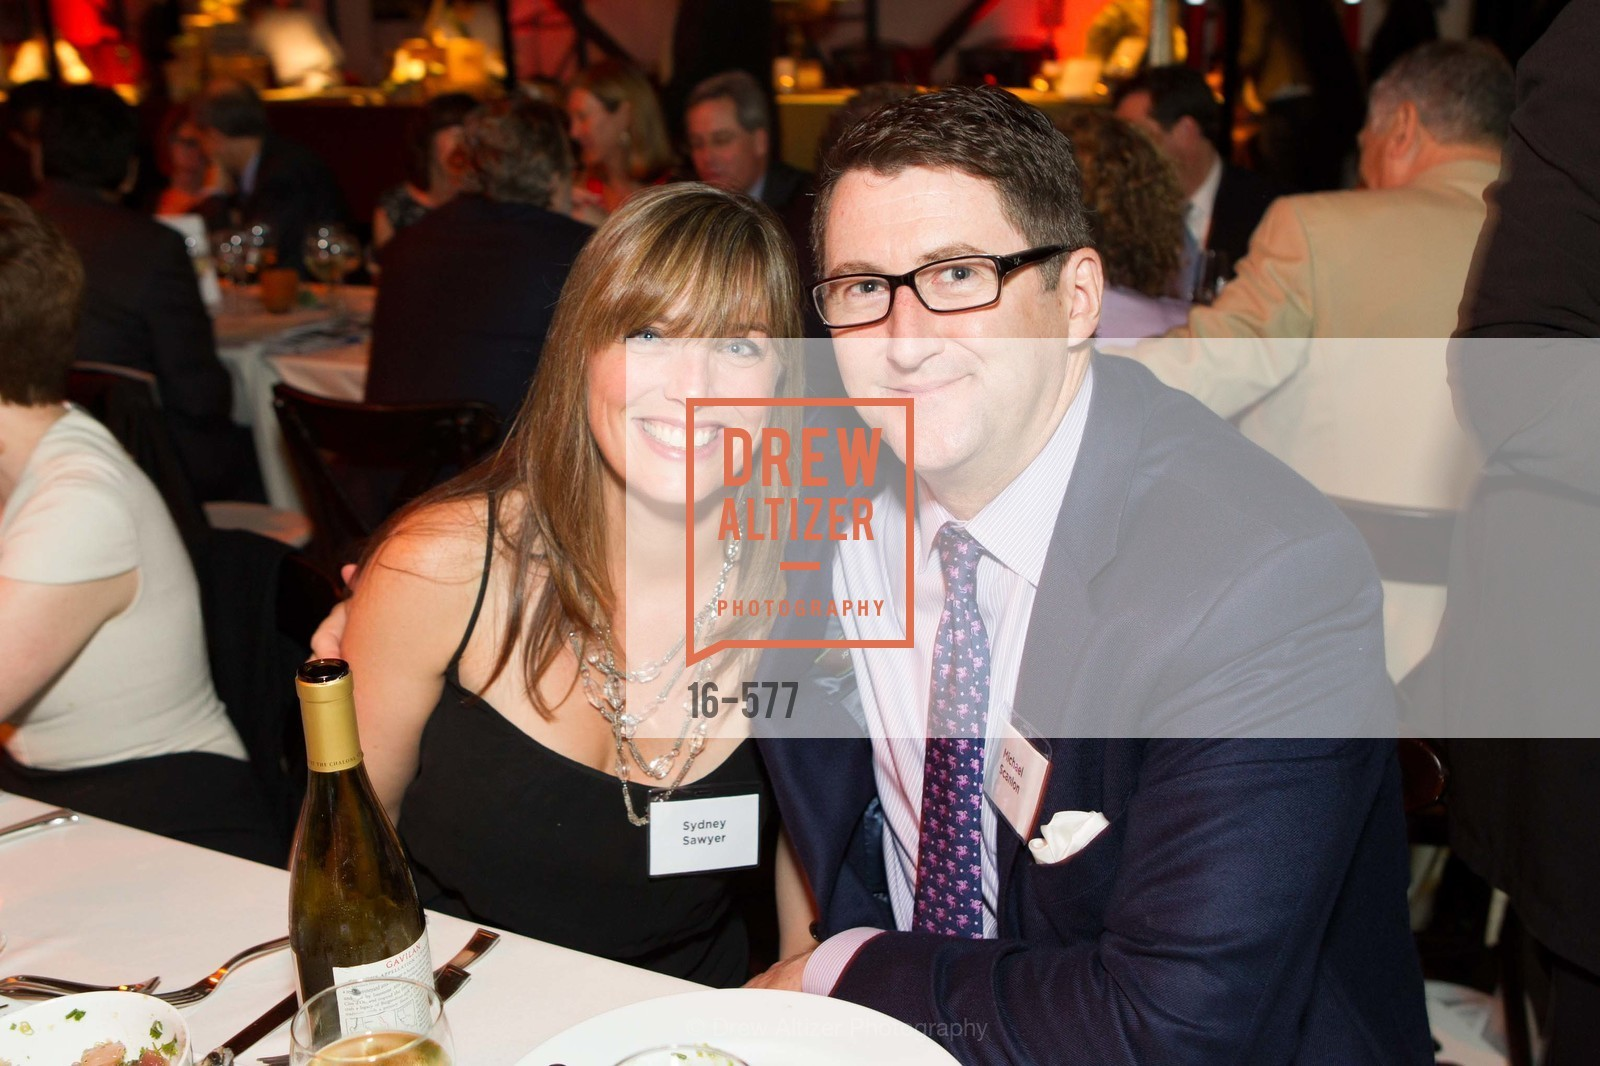 Sydney Sawyer, Michael Scanlon, SF-MARIN FOOD BANK One Big Table Gala, US, September 27th, 2014,Drew Altizer, Drew Altizer Photography, full-service agency, private events, San Francisco photographer, photographer california